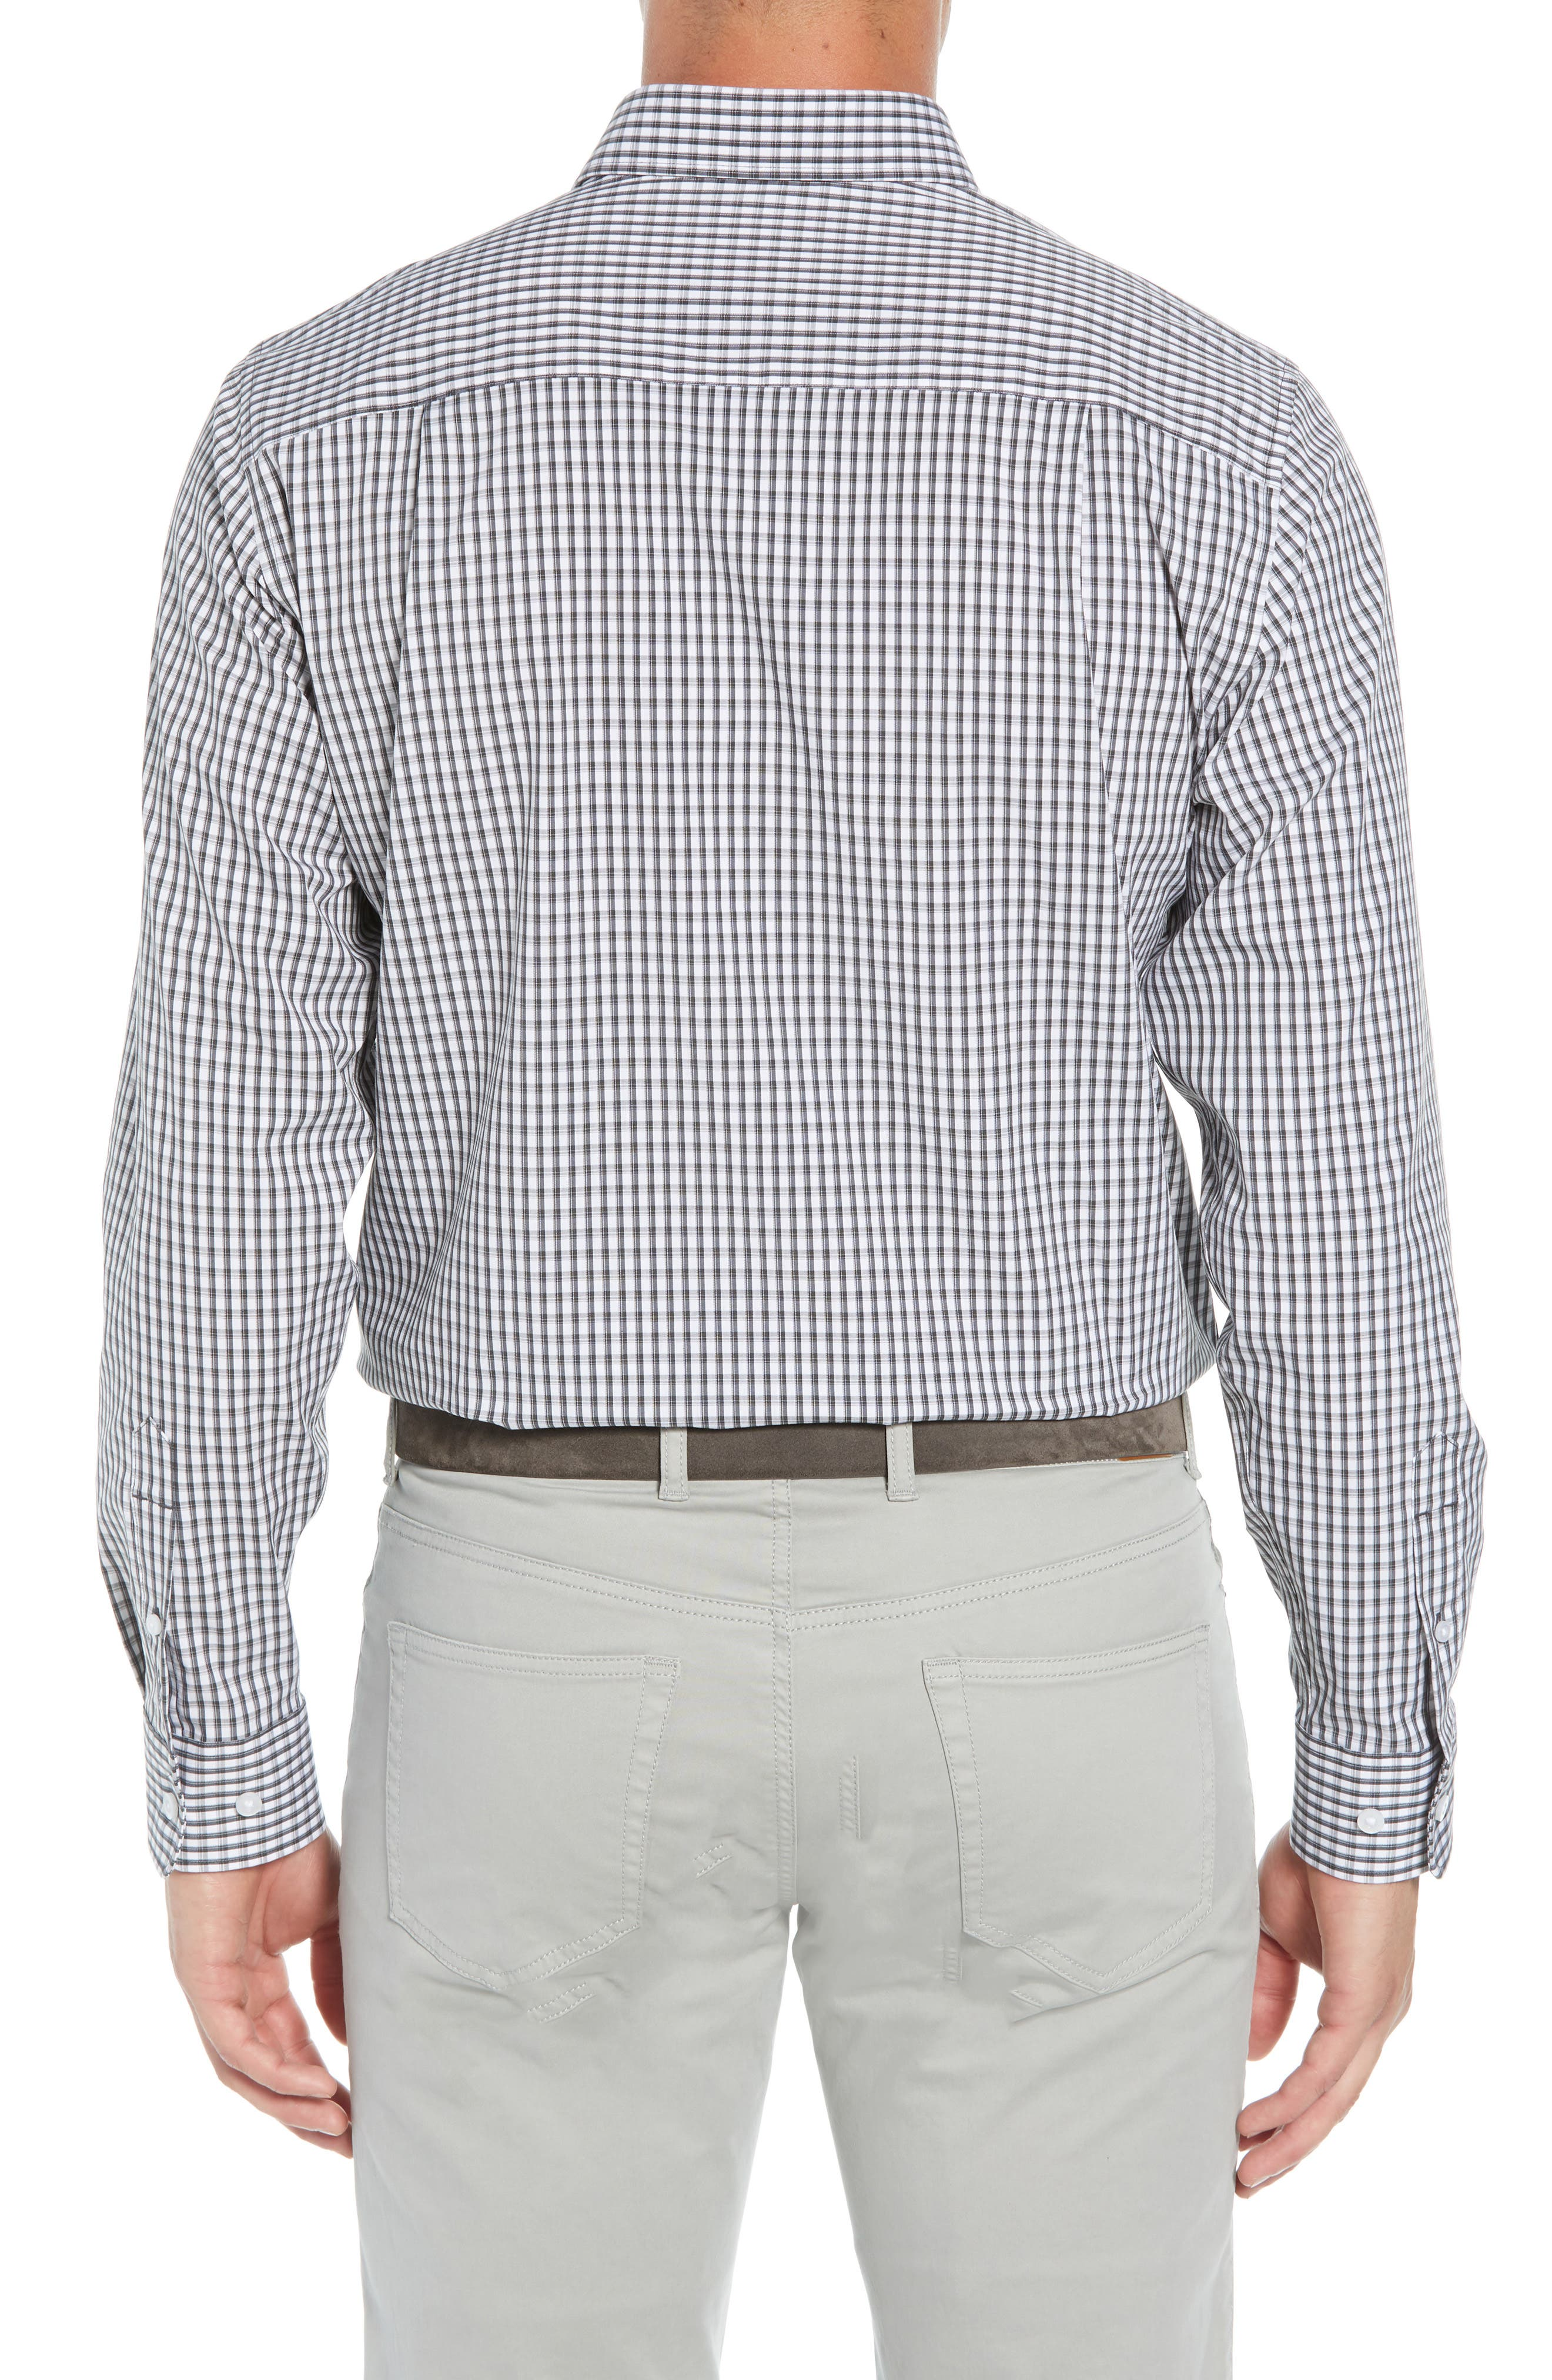 Regular Fit Gingham Non-Iron Sport Shirt,                             Alternate thumbnail 3, color,                             CHARCOAL